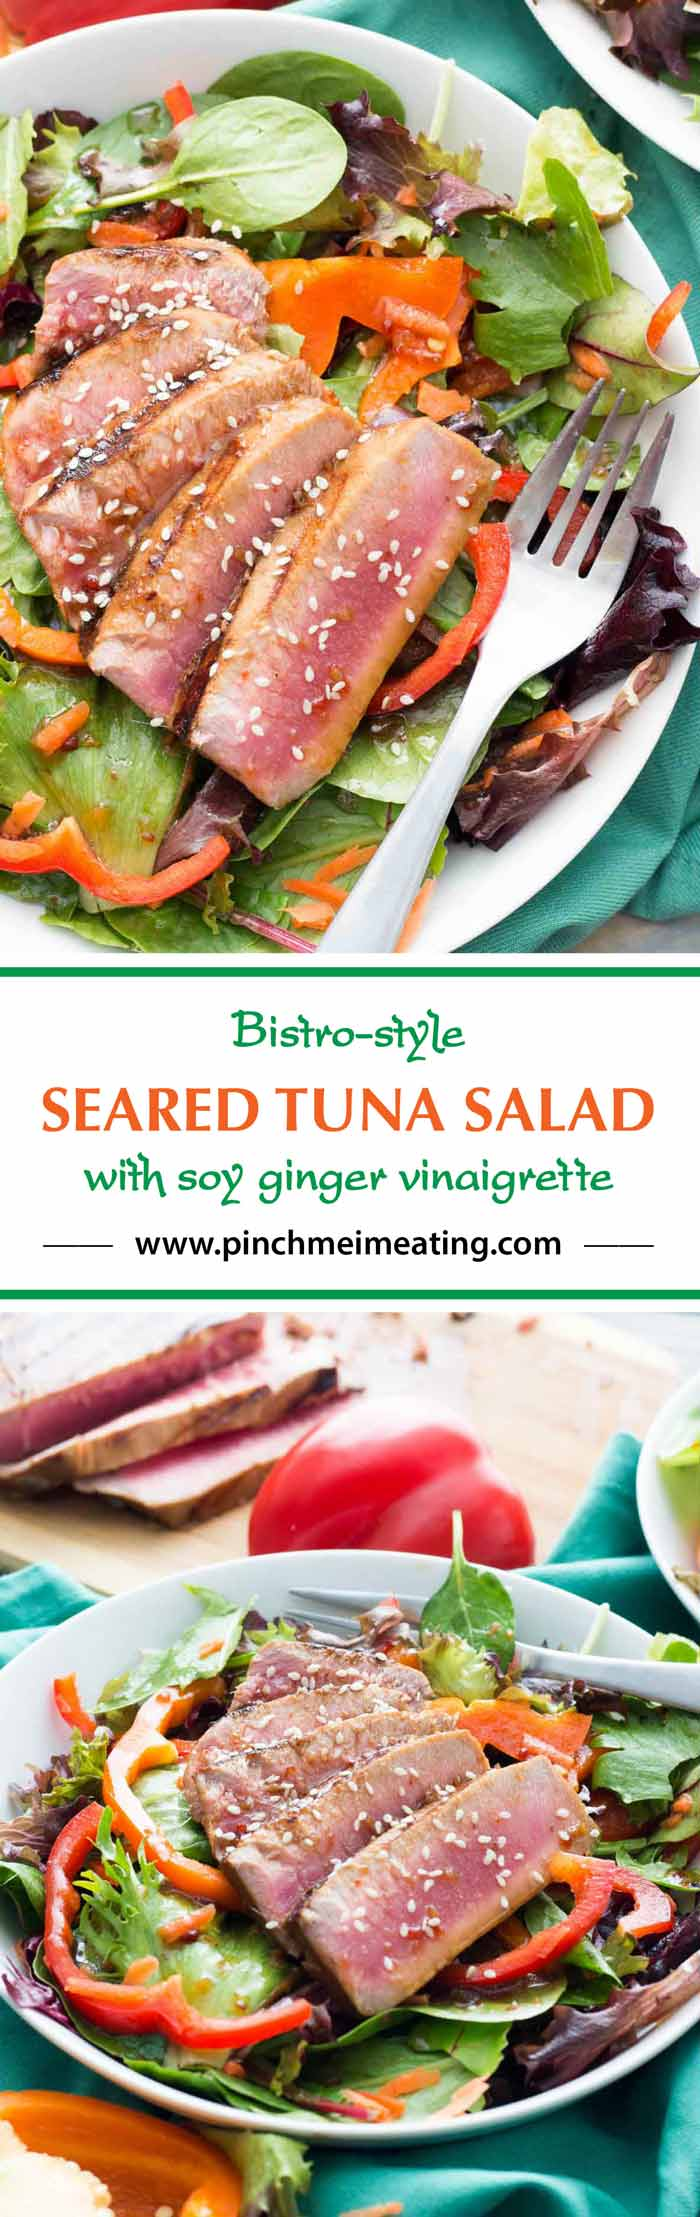 This mixed greens salad with bell peppers and a soy ginger vinaigrette is topped with a seared tuna steak for a light and refreshing spring or summer lunch!